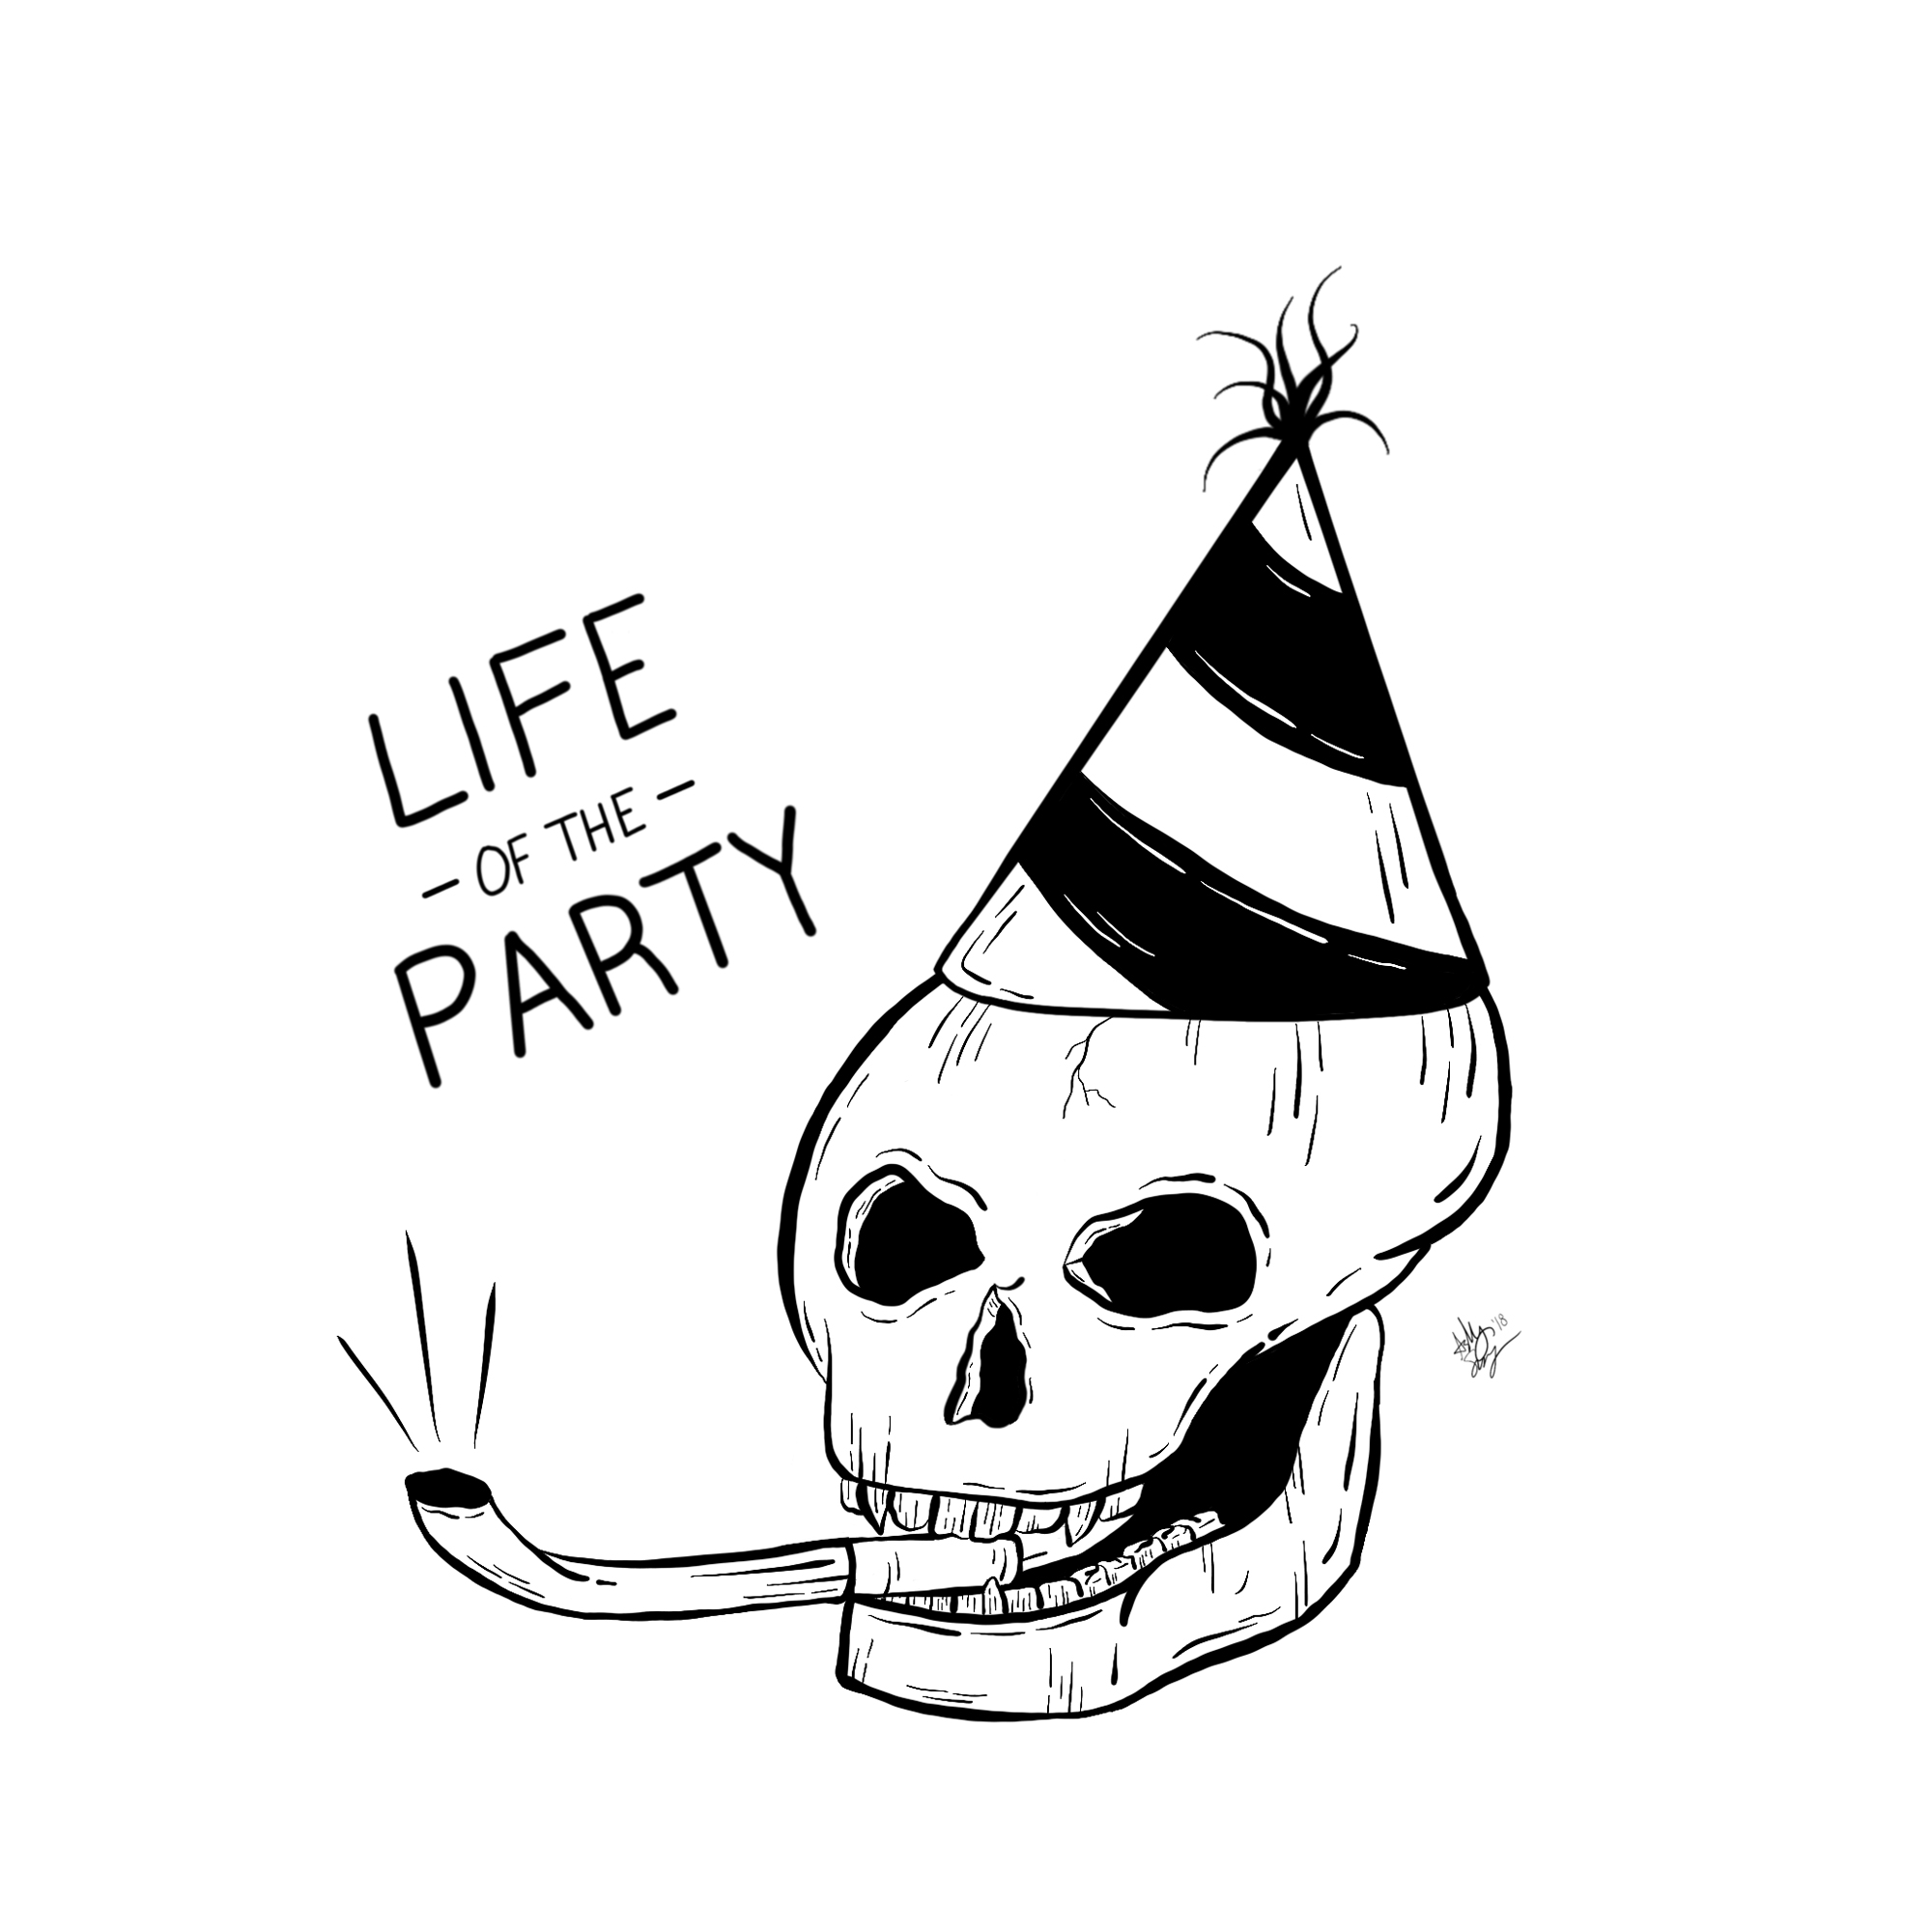 lifeoftheparty-website.jpg